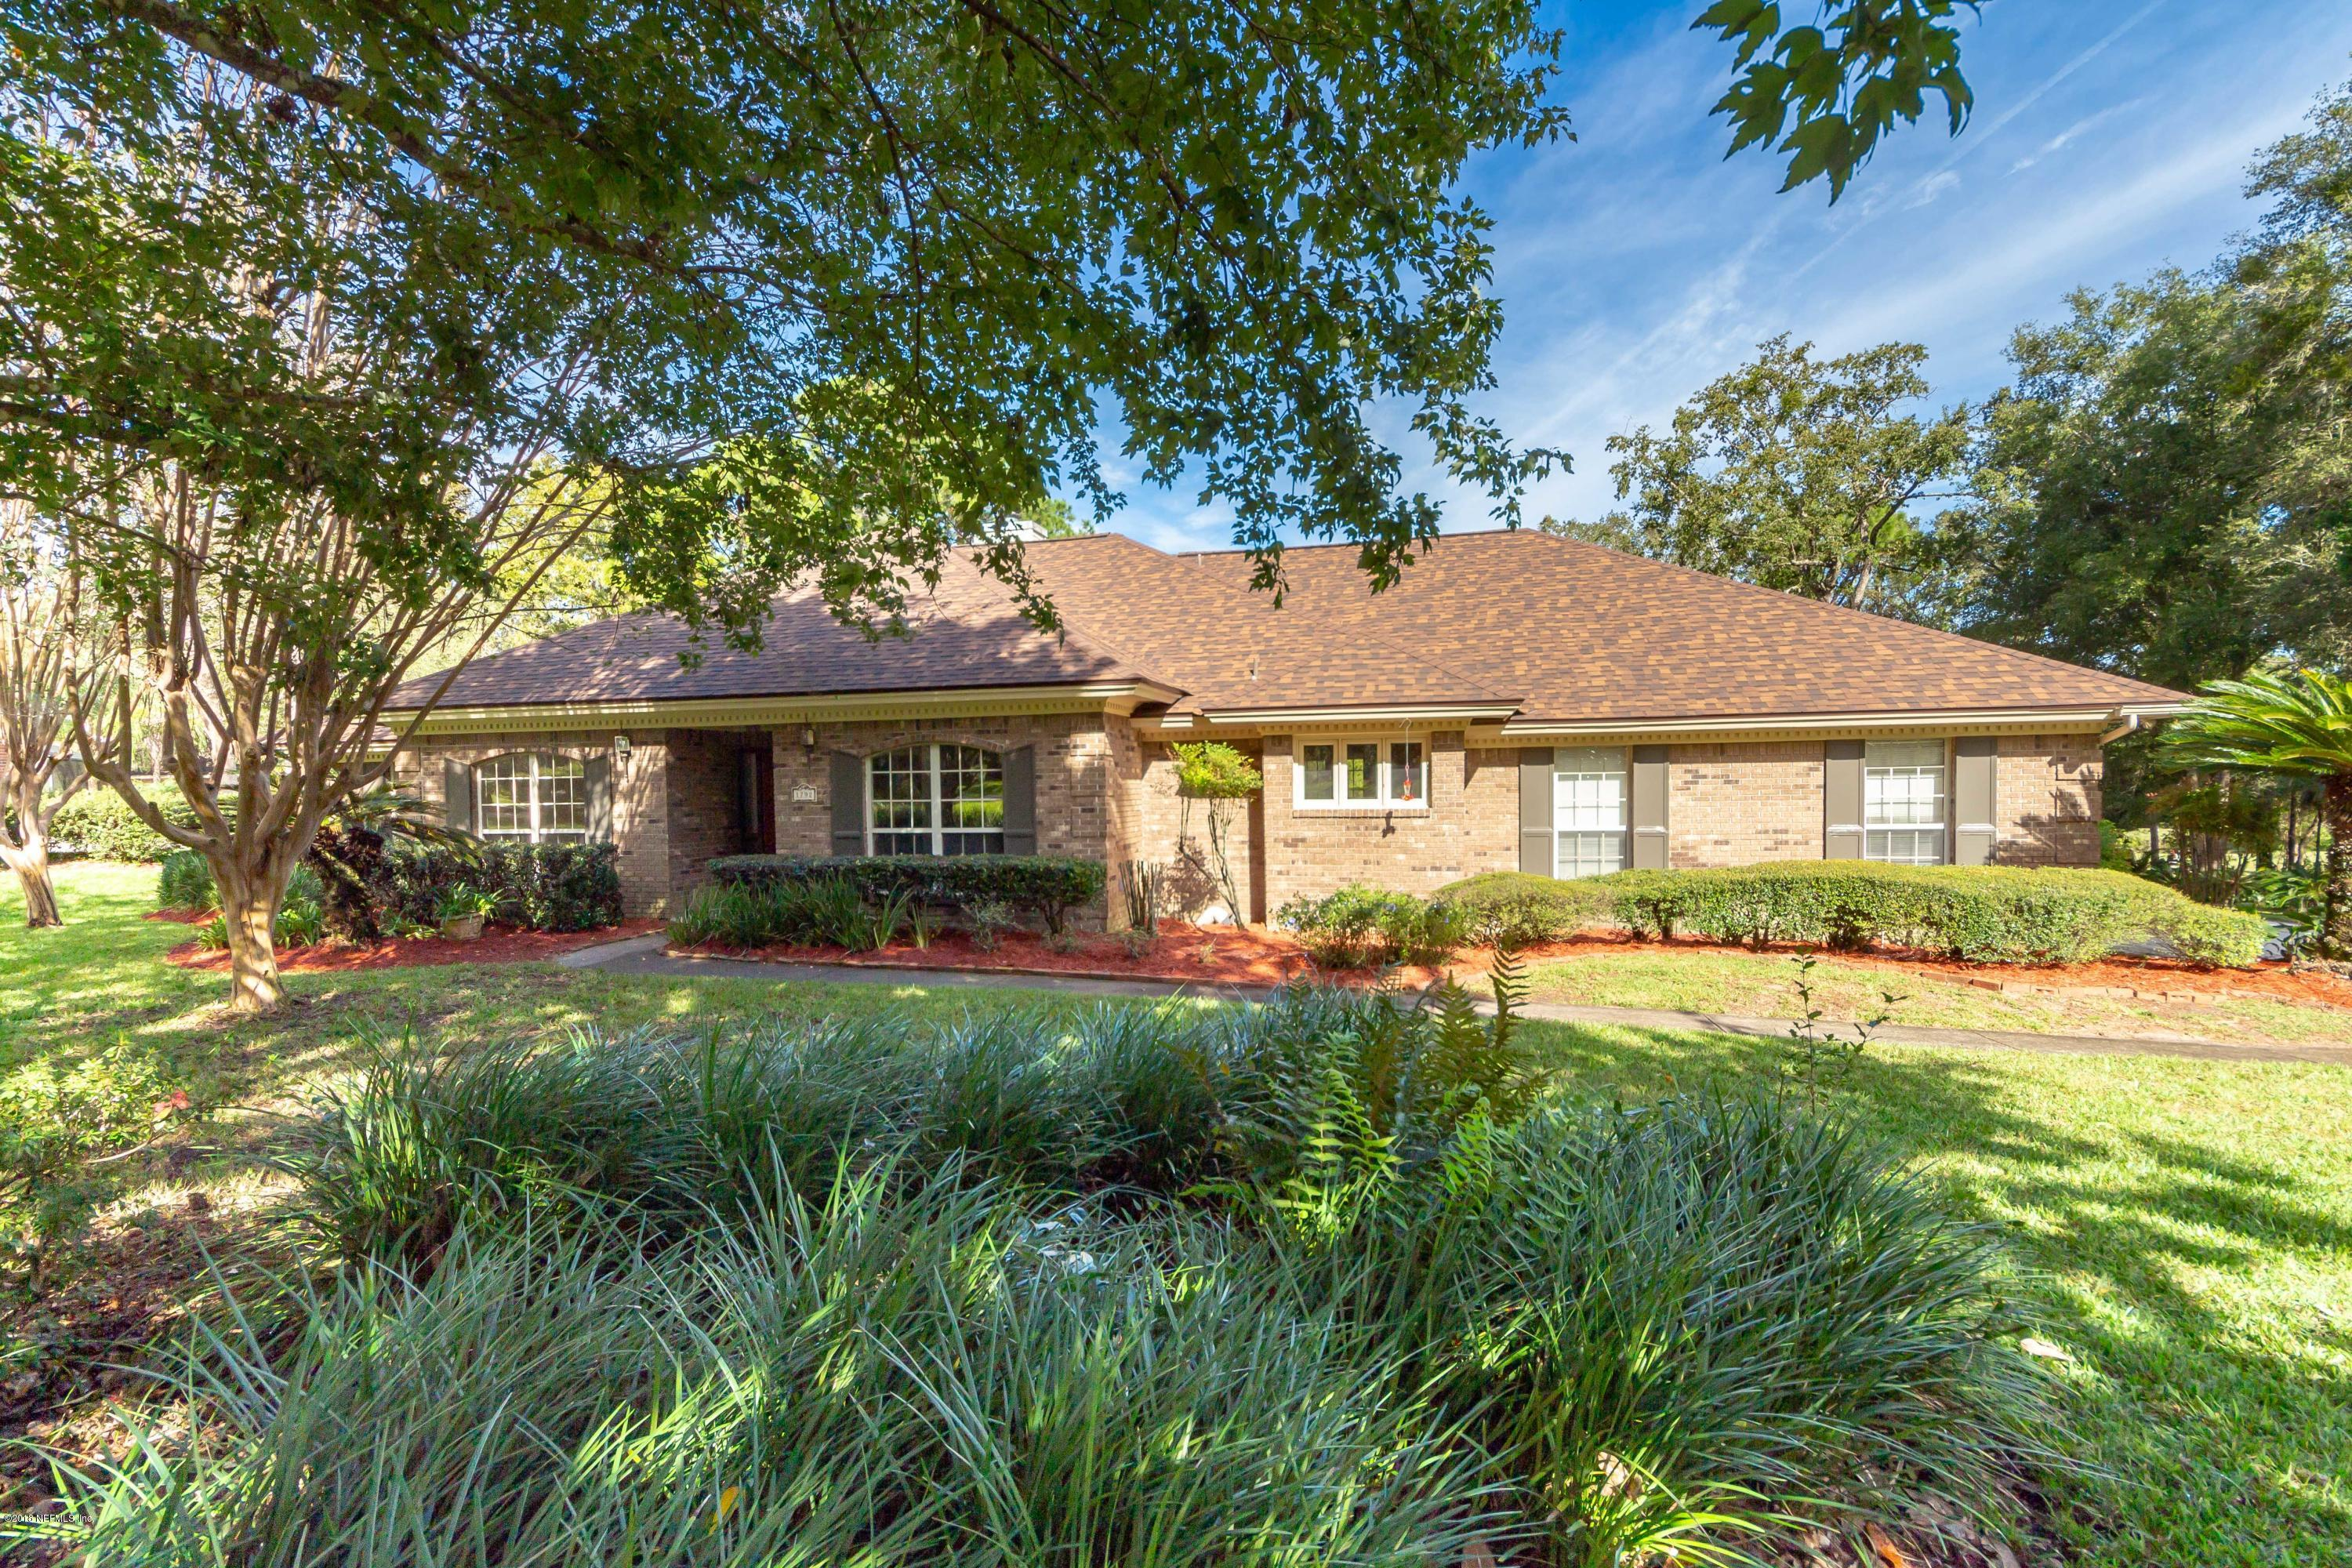 1792 PRESTON, GREEN COVE SPRINGS, FLORIDA 32043, 4 Bedrooms Bedrooms, ,3 BathroomsBathrooms,Residential - single family,For sale,PRESTON,965289